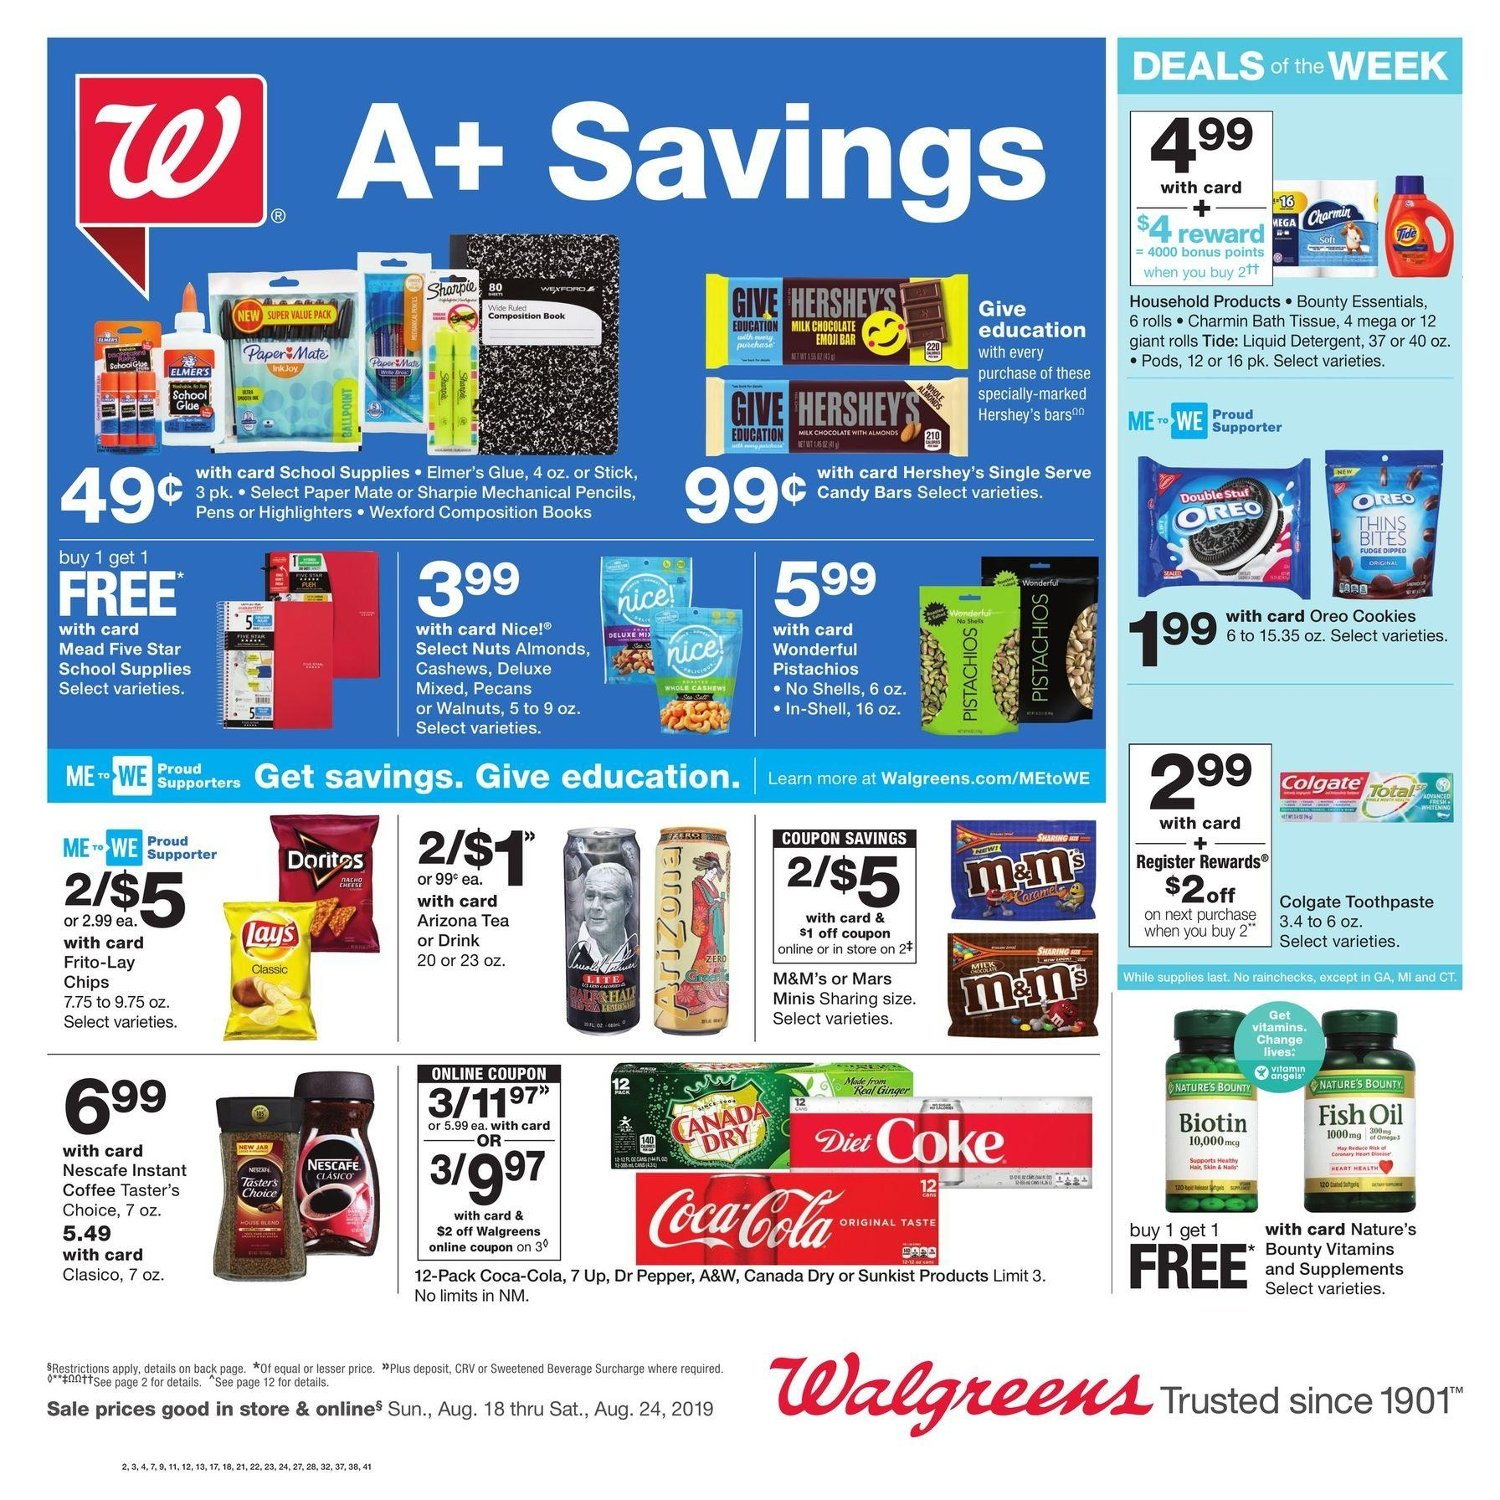 Walgreens Weekly August 18 - 24, 2019 Page 1